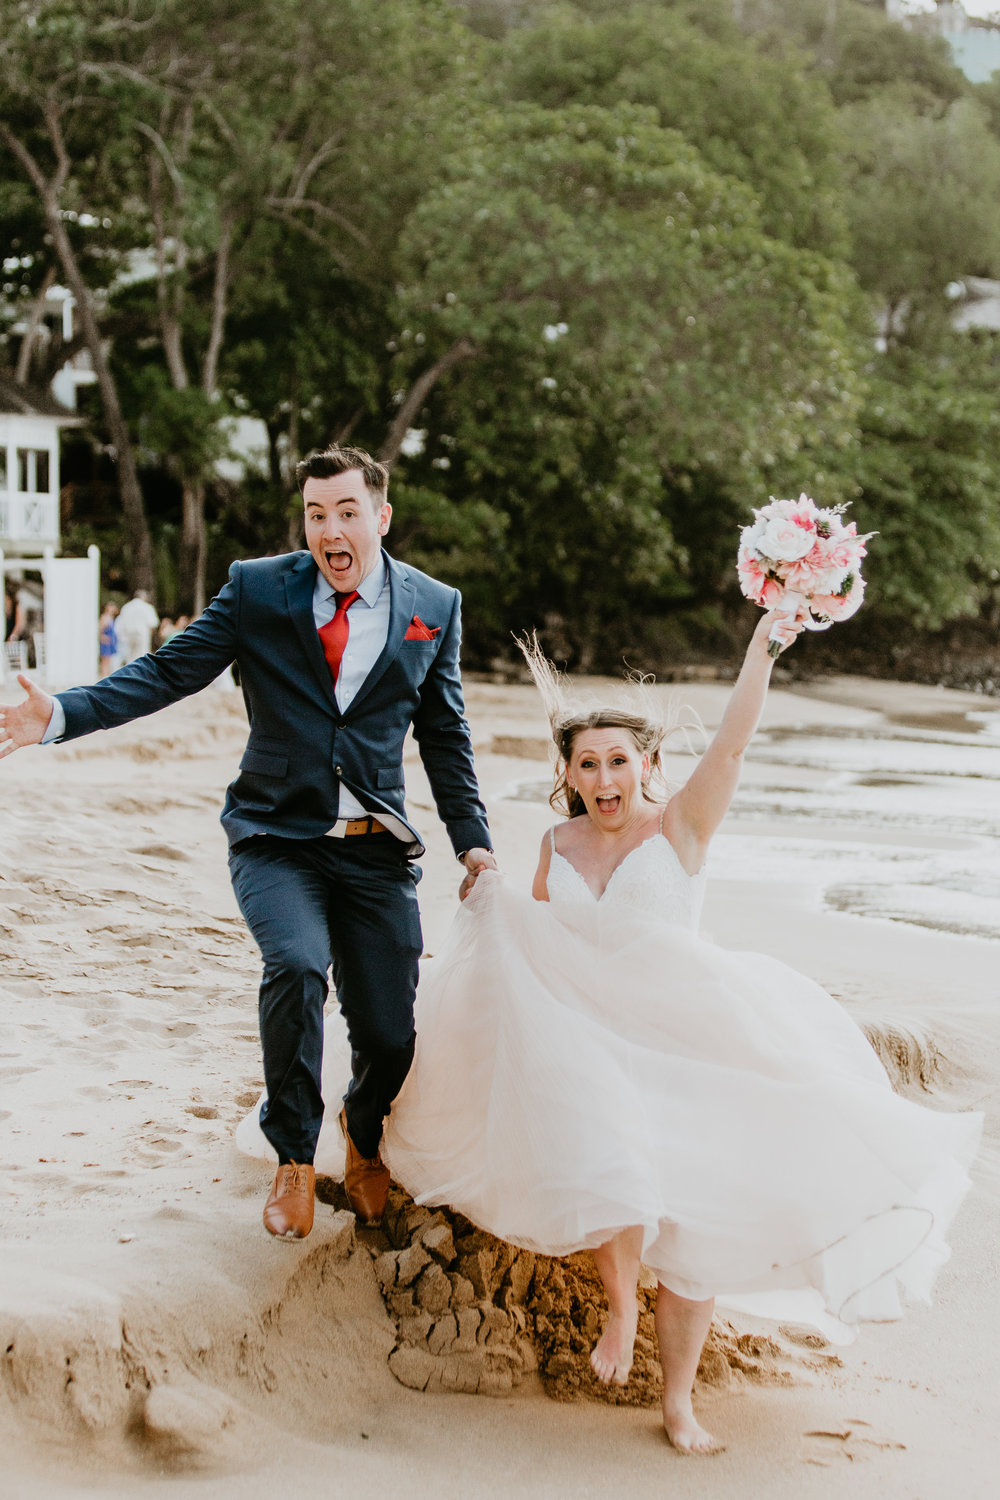 nicole-daacke-photography-destination-wedding-in-st-lucia-sandals-la-toc-intimate-island-wedding-carribean-elopement-photographer-chill-island-wedding-87.jpg